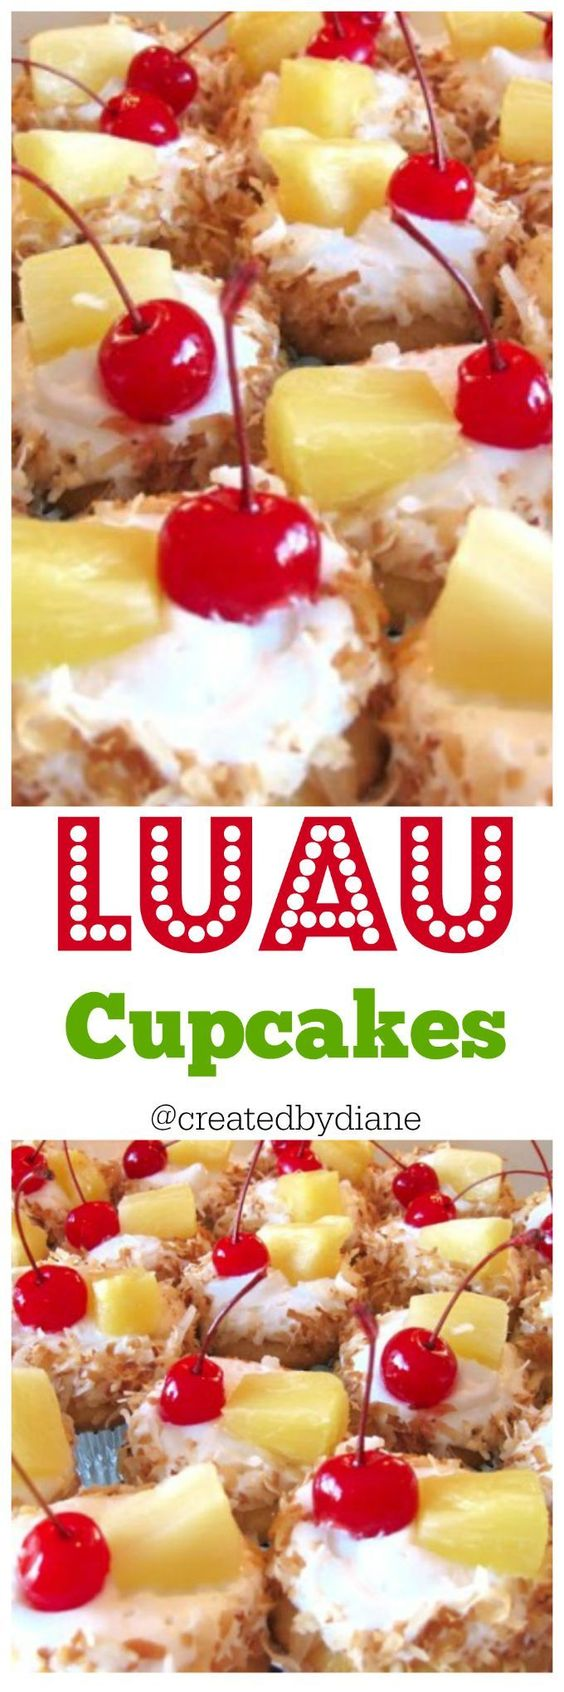 luau-cupcakes full of pineapple and coconut flavor with toasted coconut topped with a cherry, perfect Hawaiian Dessert @createdbydiane www.createdby-diane.com